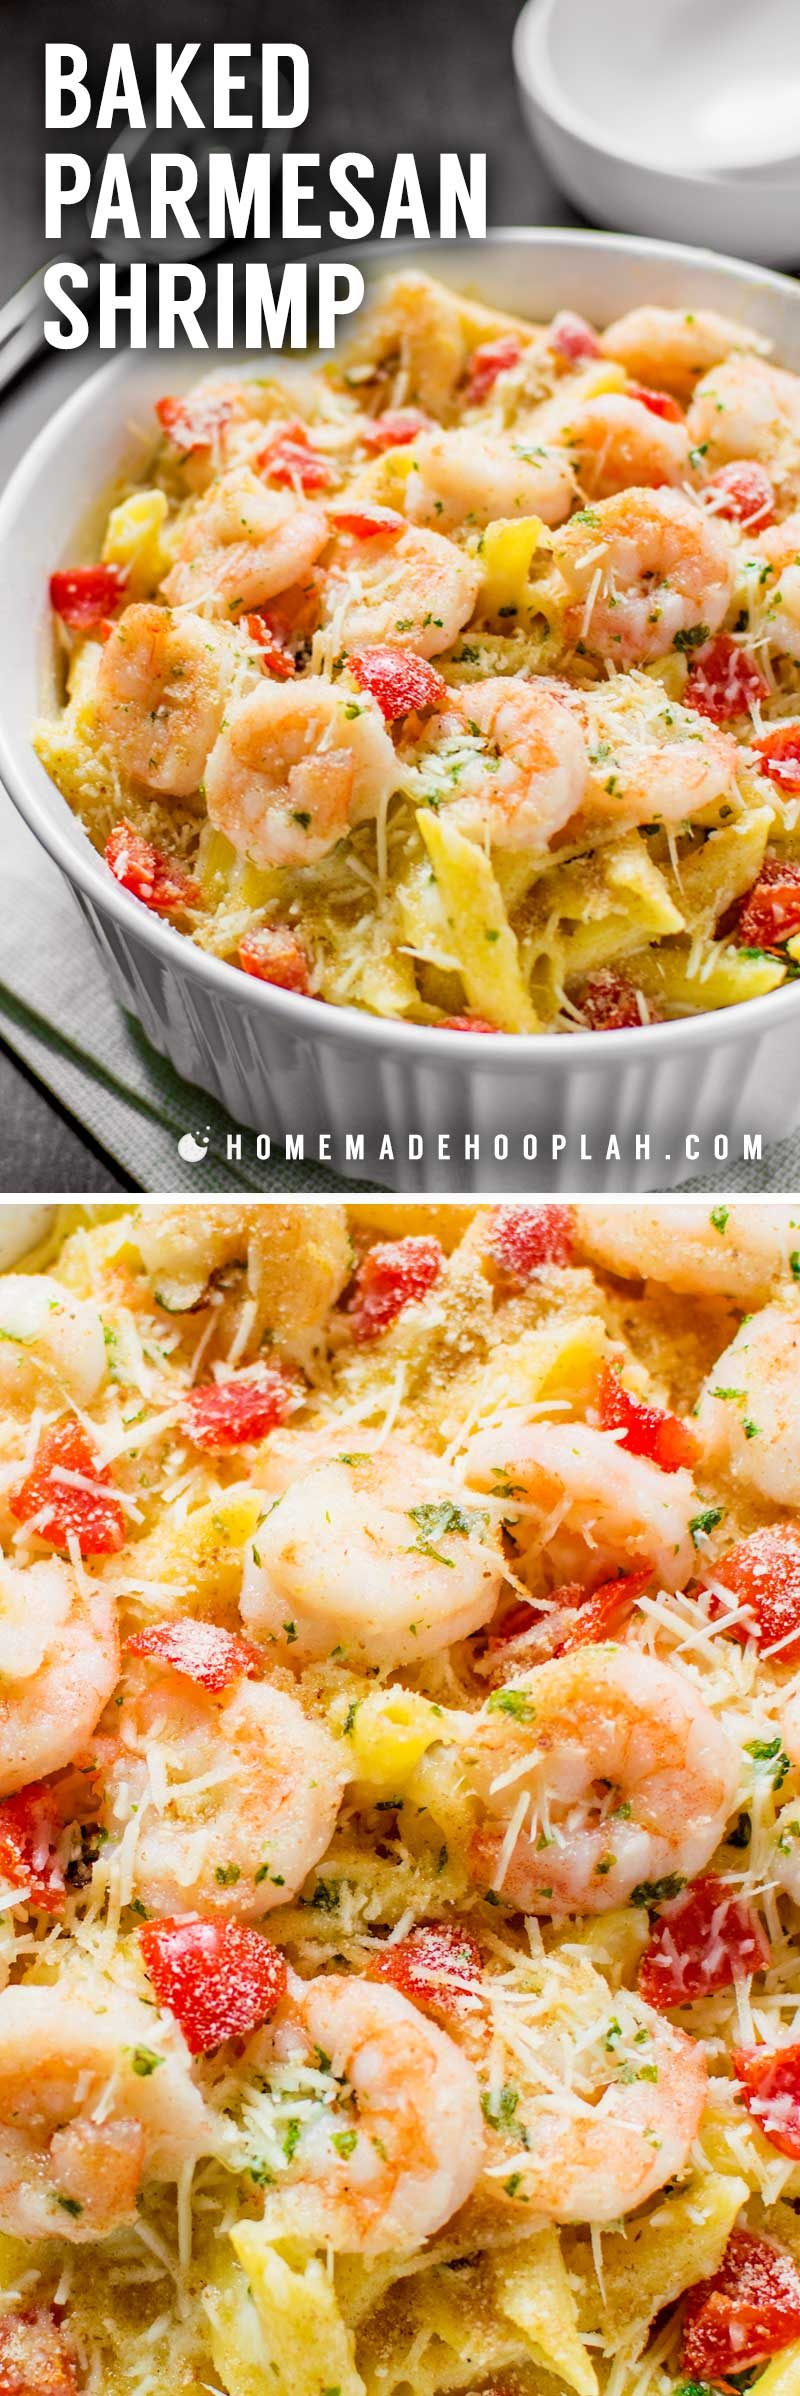 How to make a shrimp pasta bake.